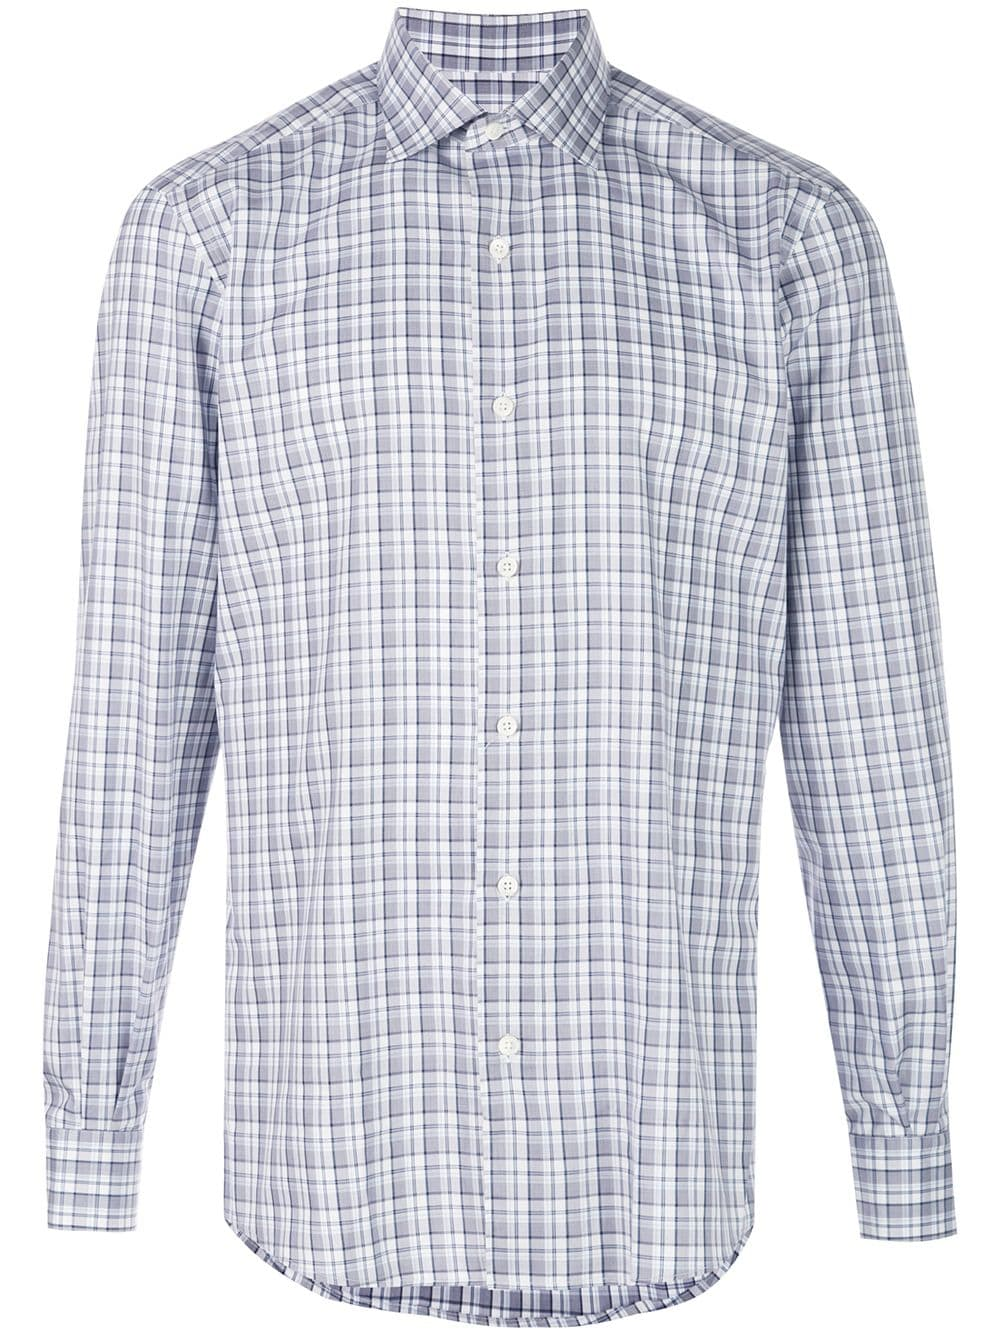 4dcb29b7 Ermenegildo Zegna Traveller Shirt in 2019 | Products | Travel shirts ...